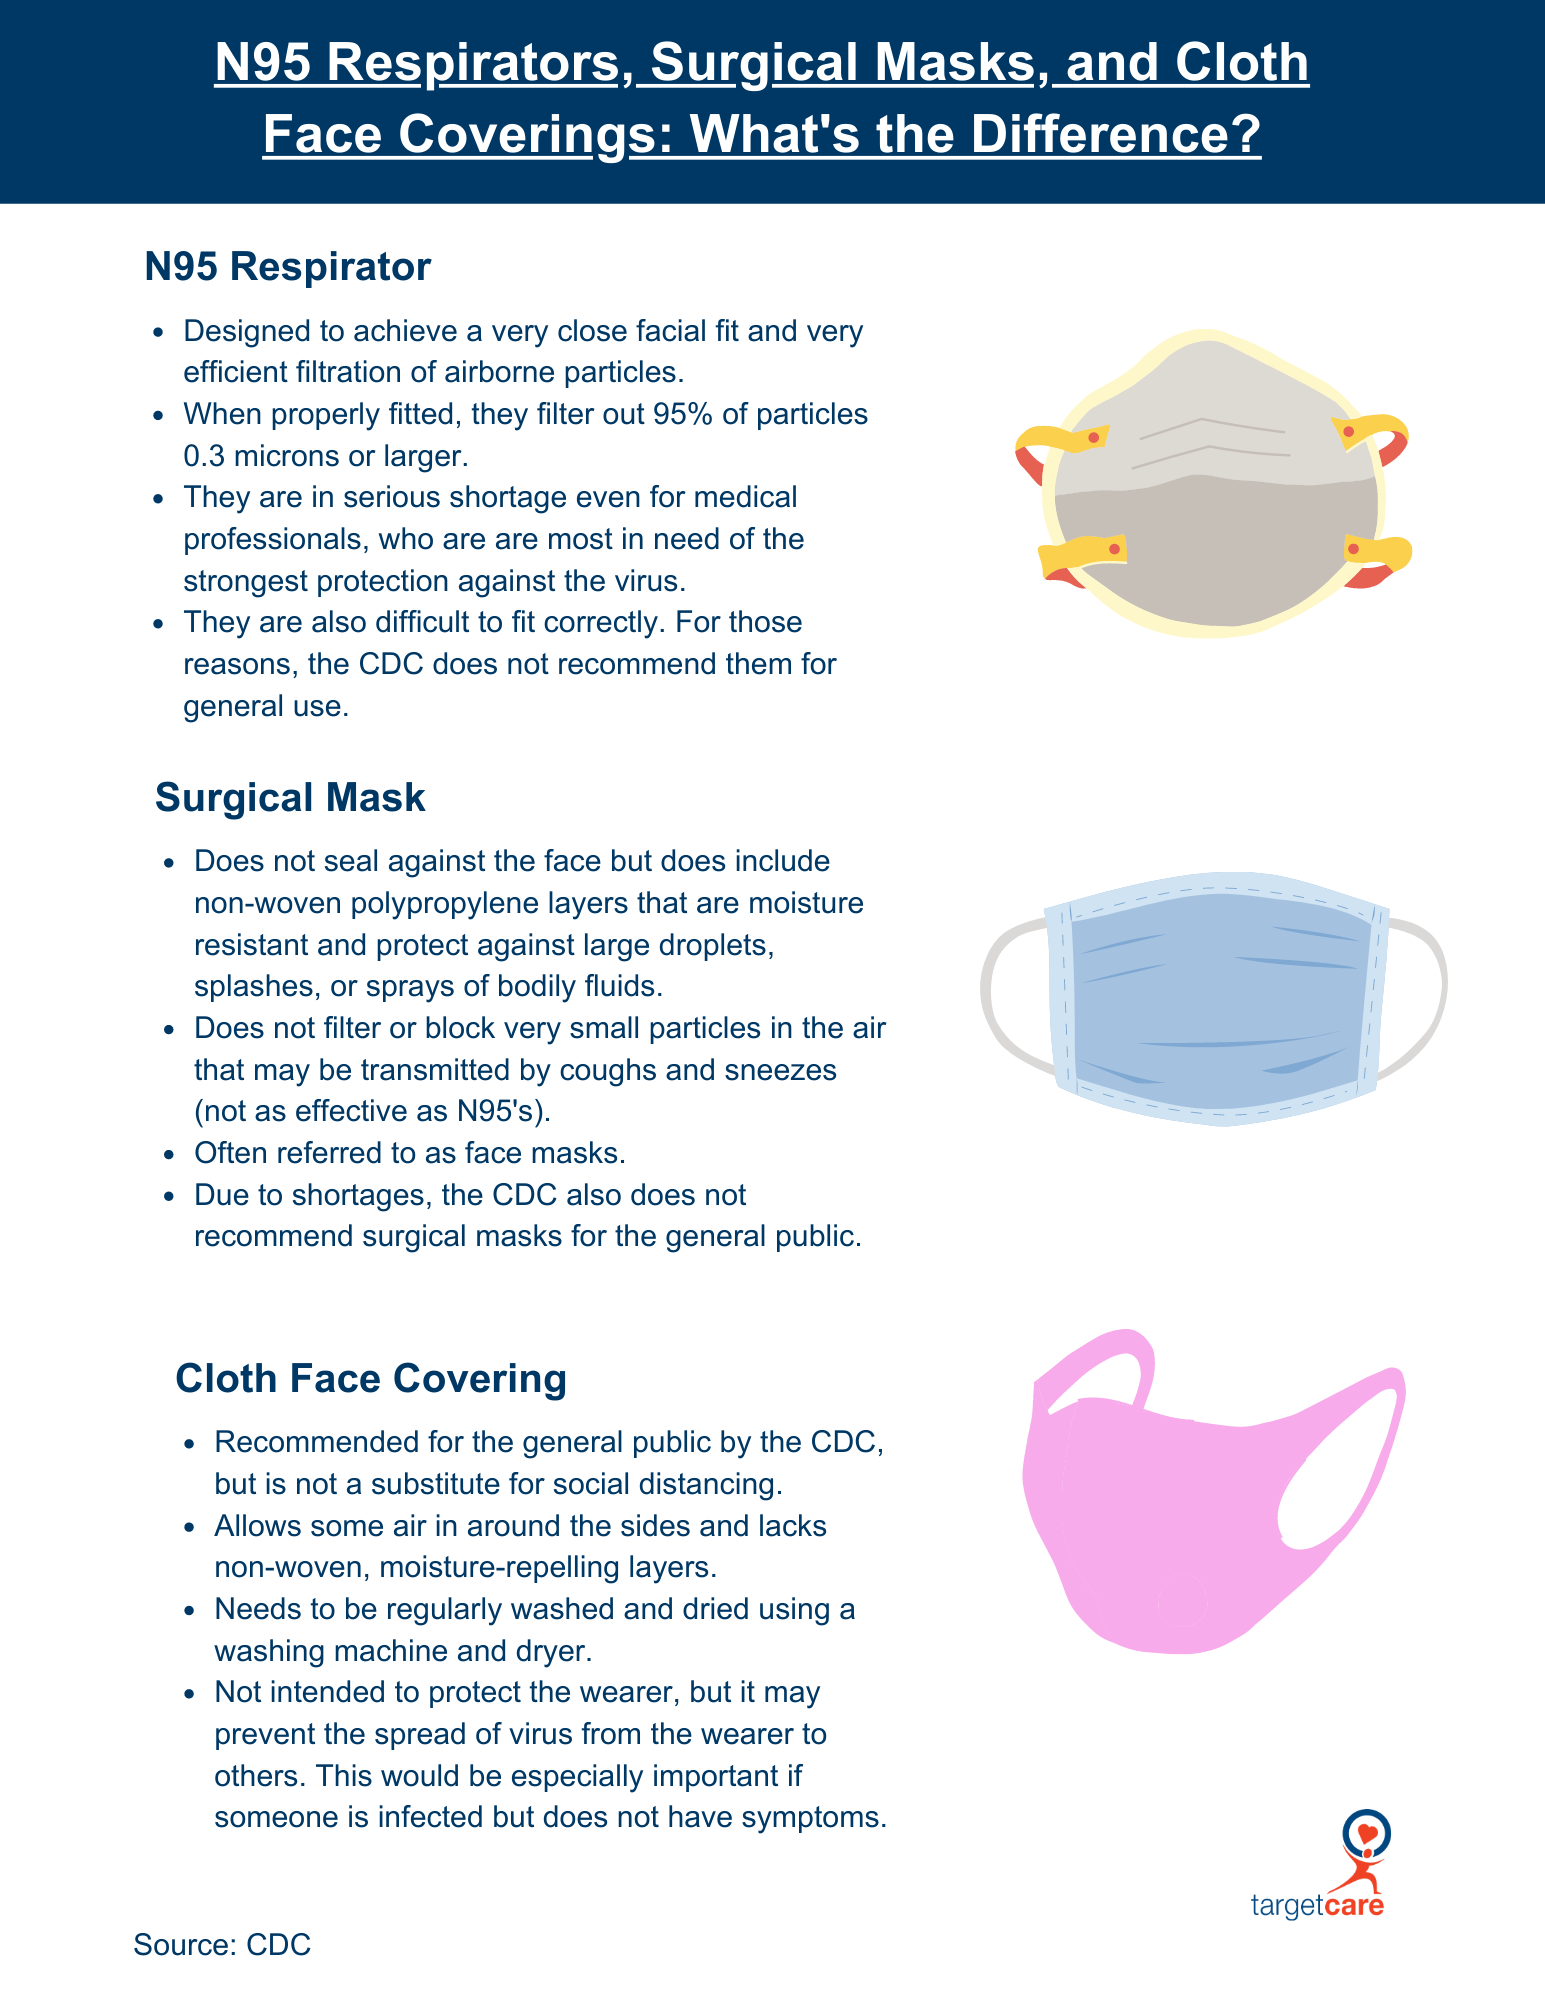 N95 Respirators_ Surgical Masks and Cloth Face Coverings